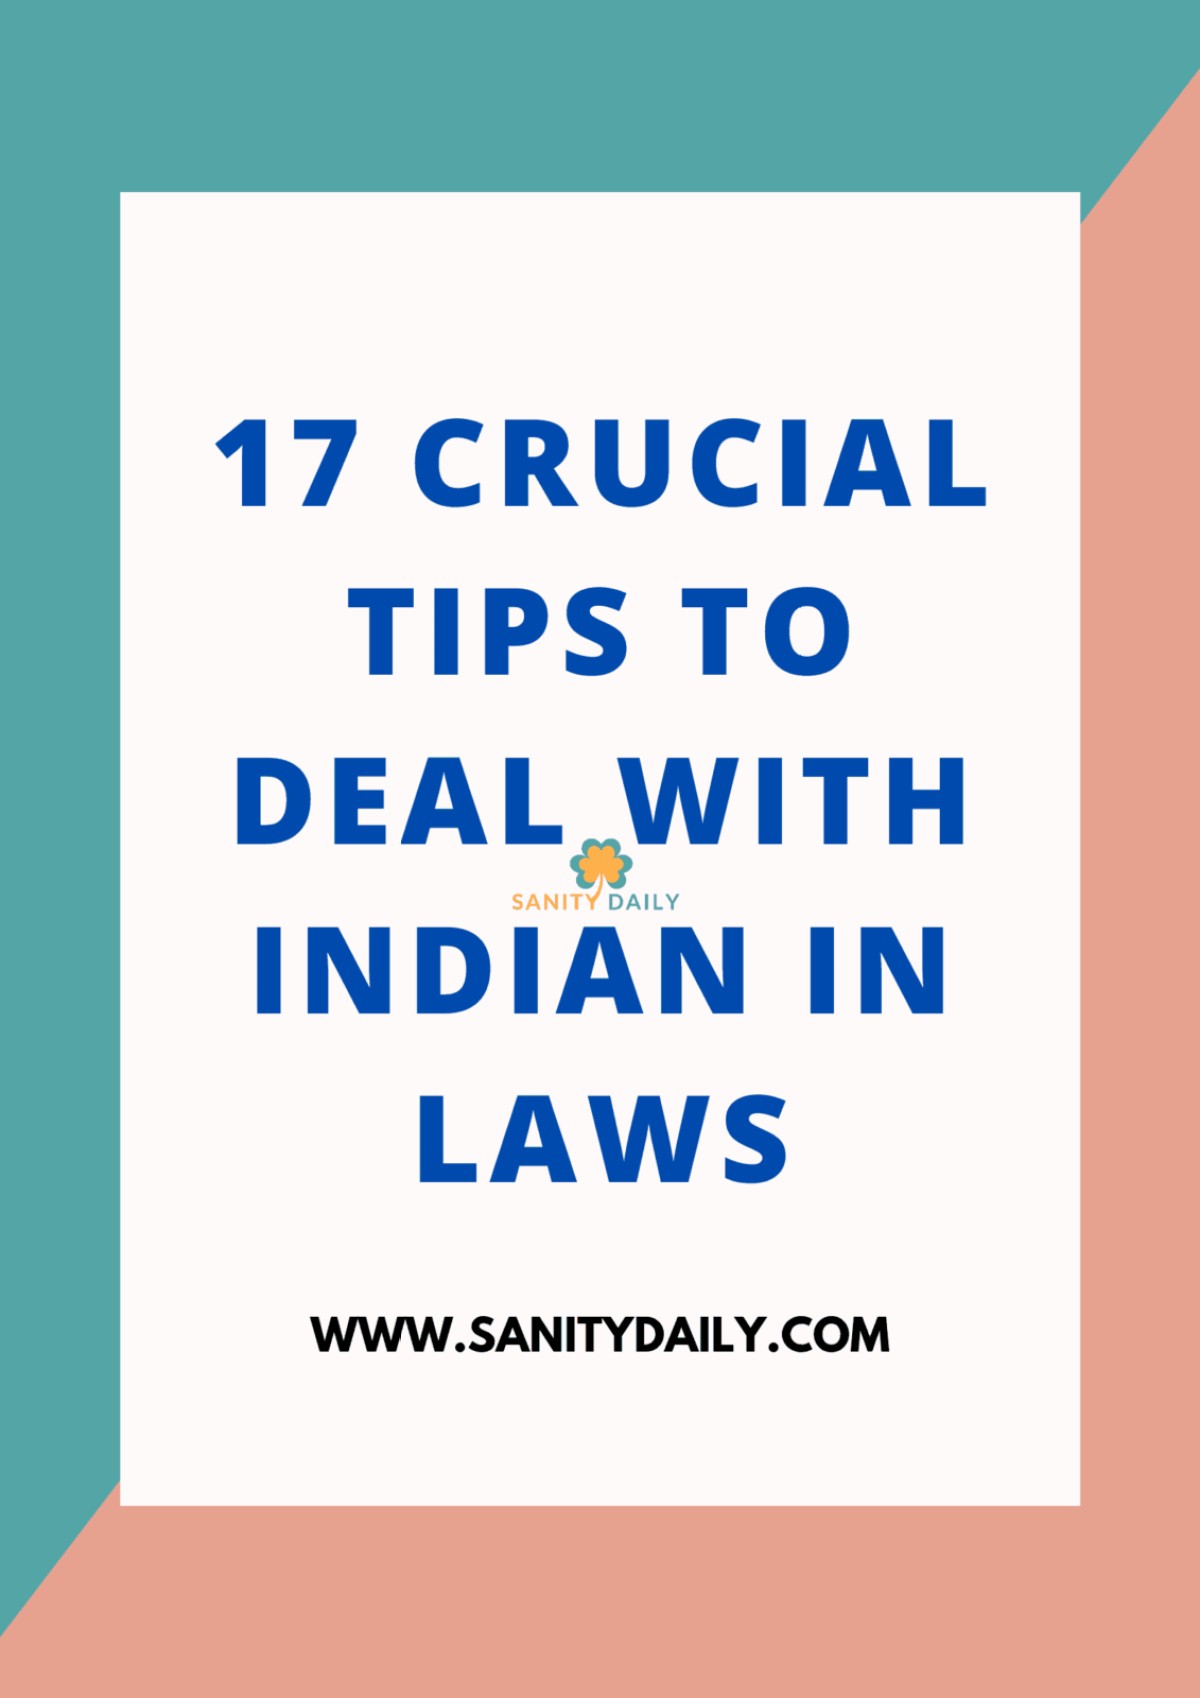 Tips to deal with Indian in laws